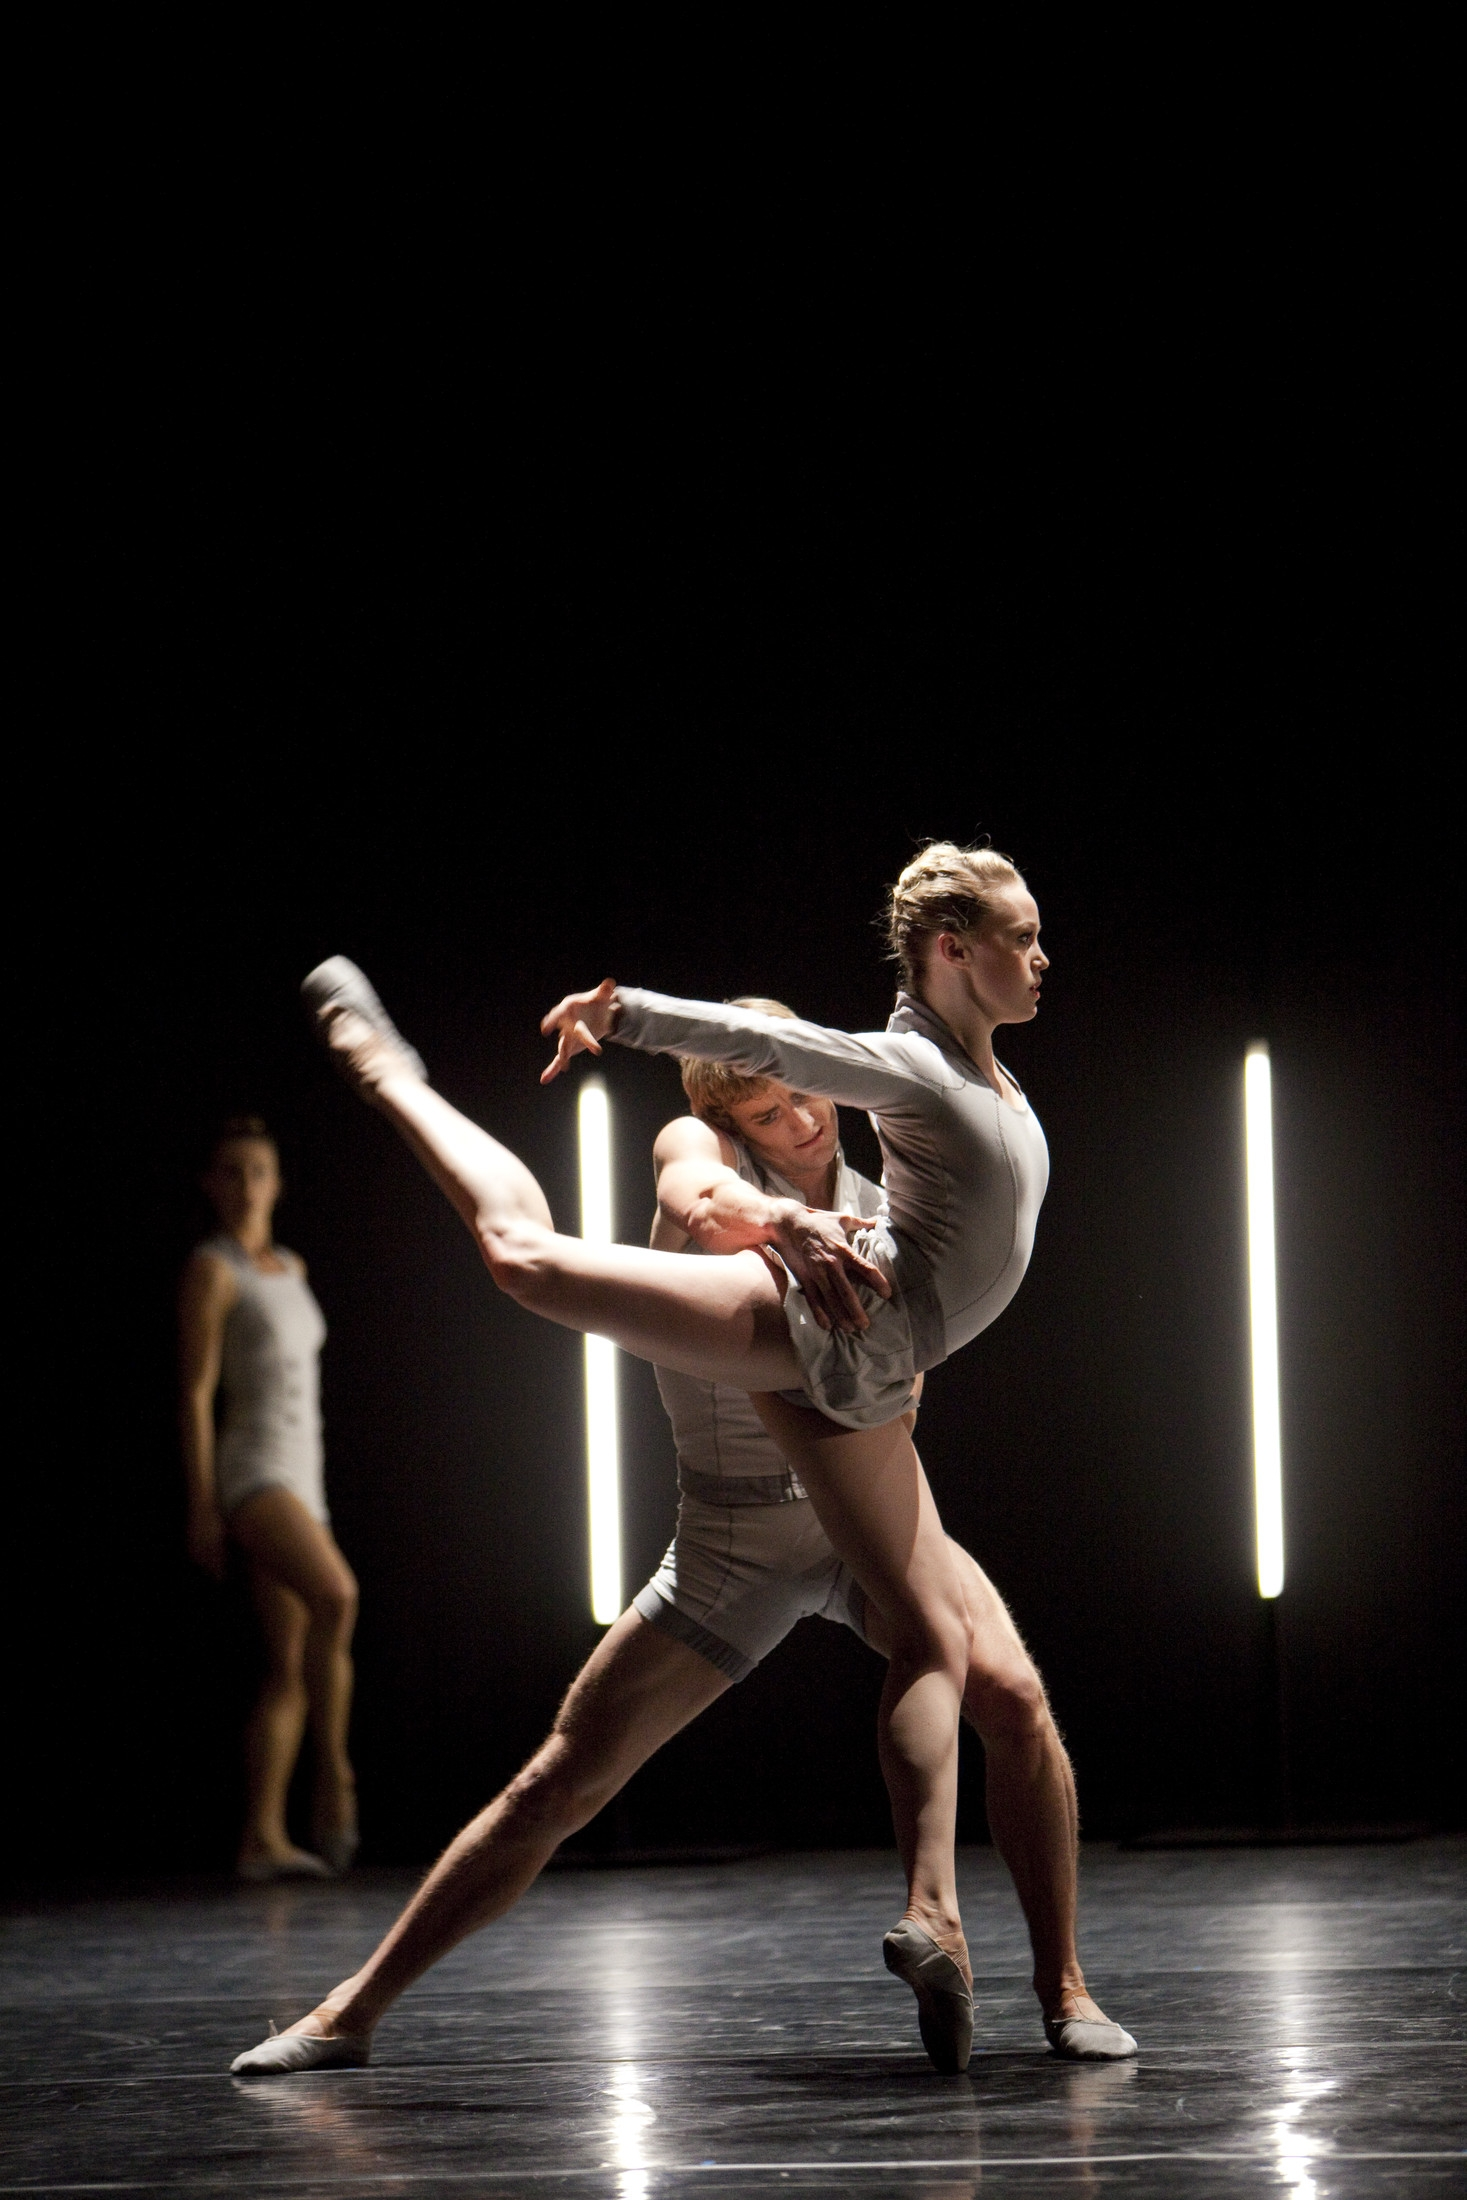 Dusty Button and Aaron Robison in BRB's The Centre and its Opposite Photo: Bill Cooper Source: BRB ©